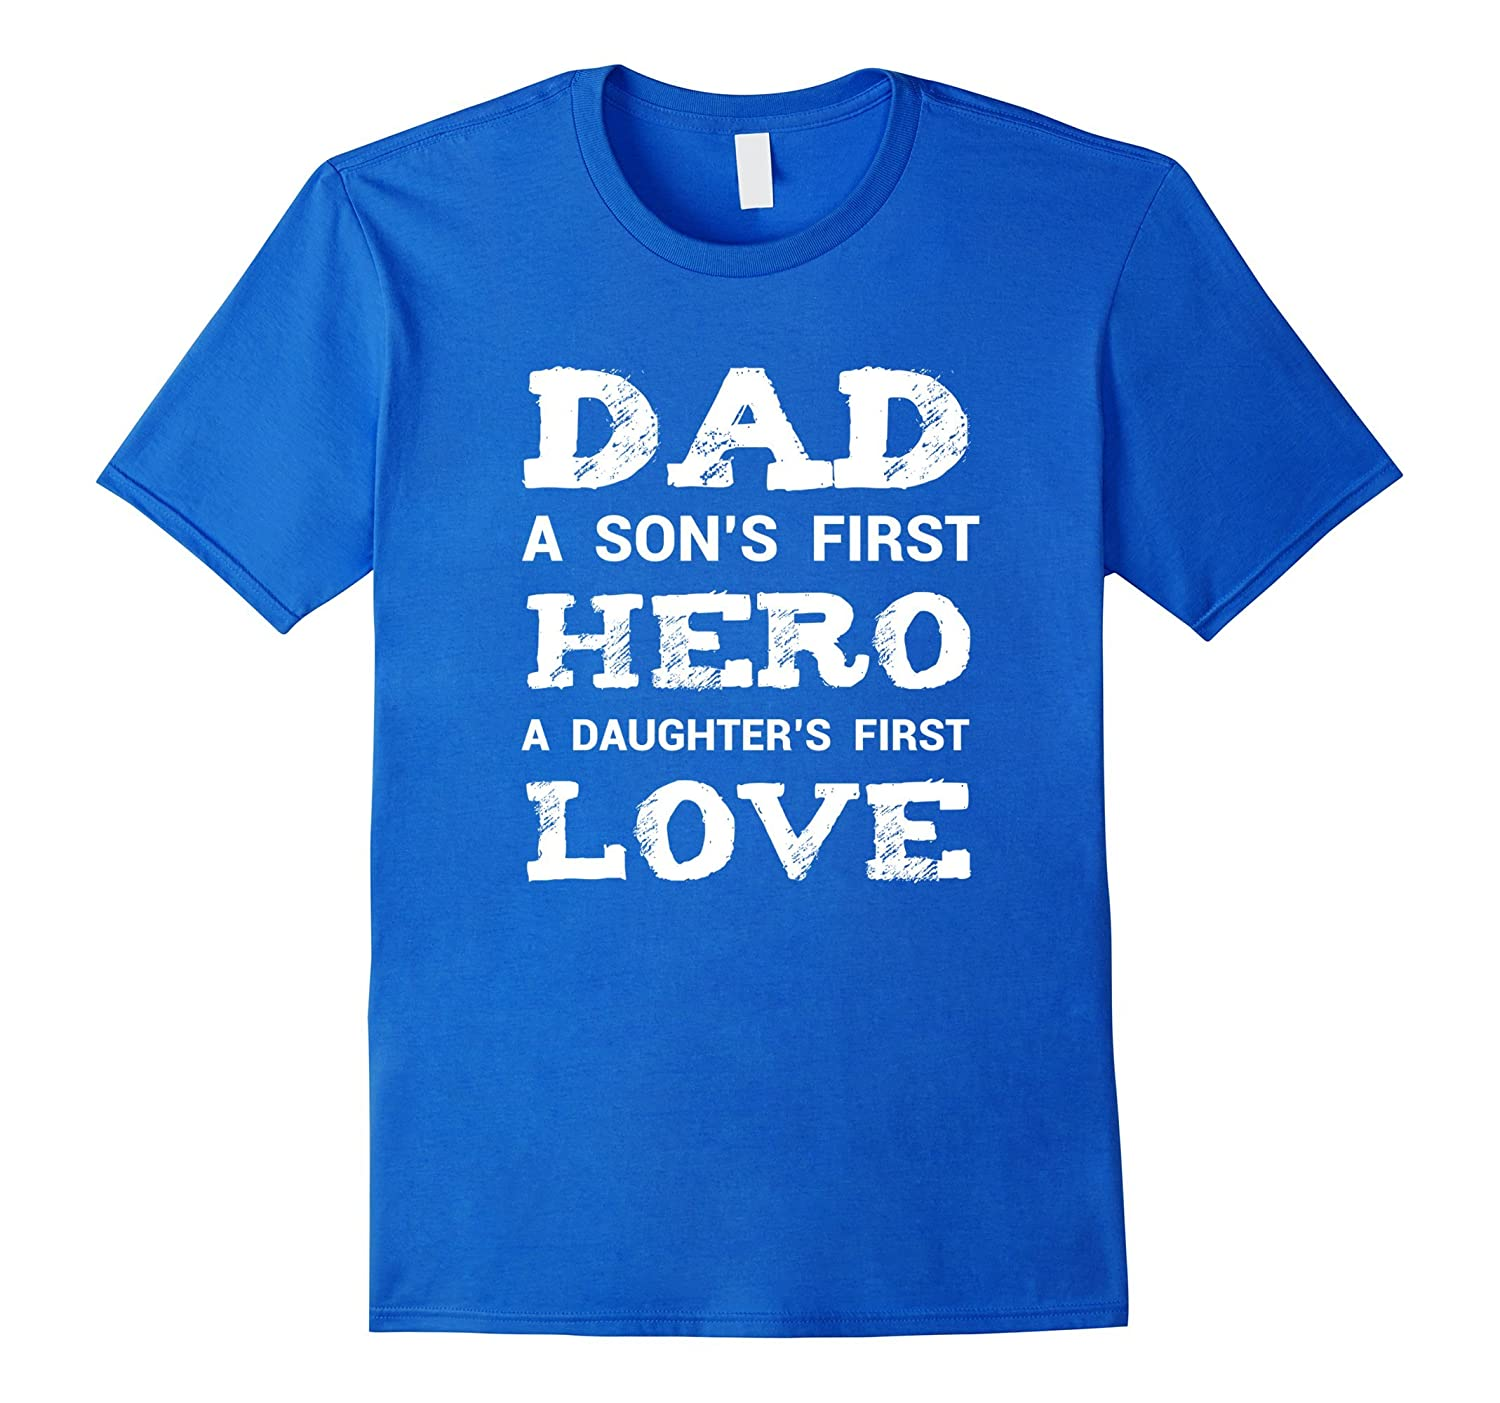 63674b3e Cute Daddy Son Daughter Shirt New Dad Fathers Day Gift-PL – Polozatee